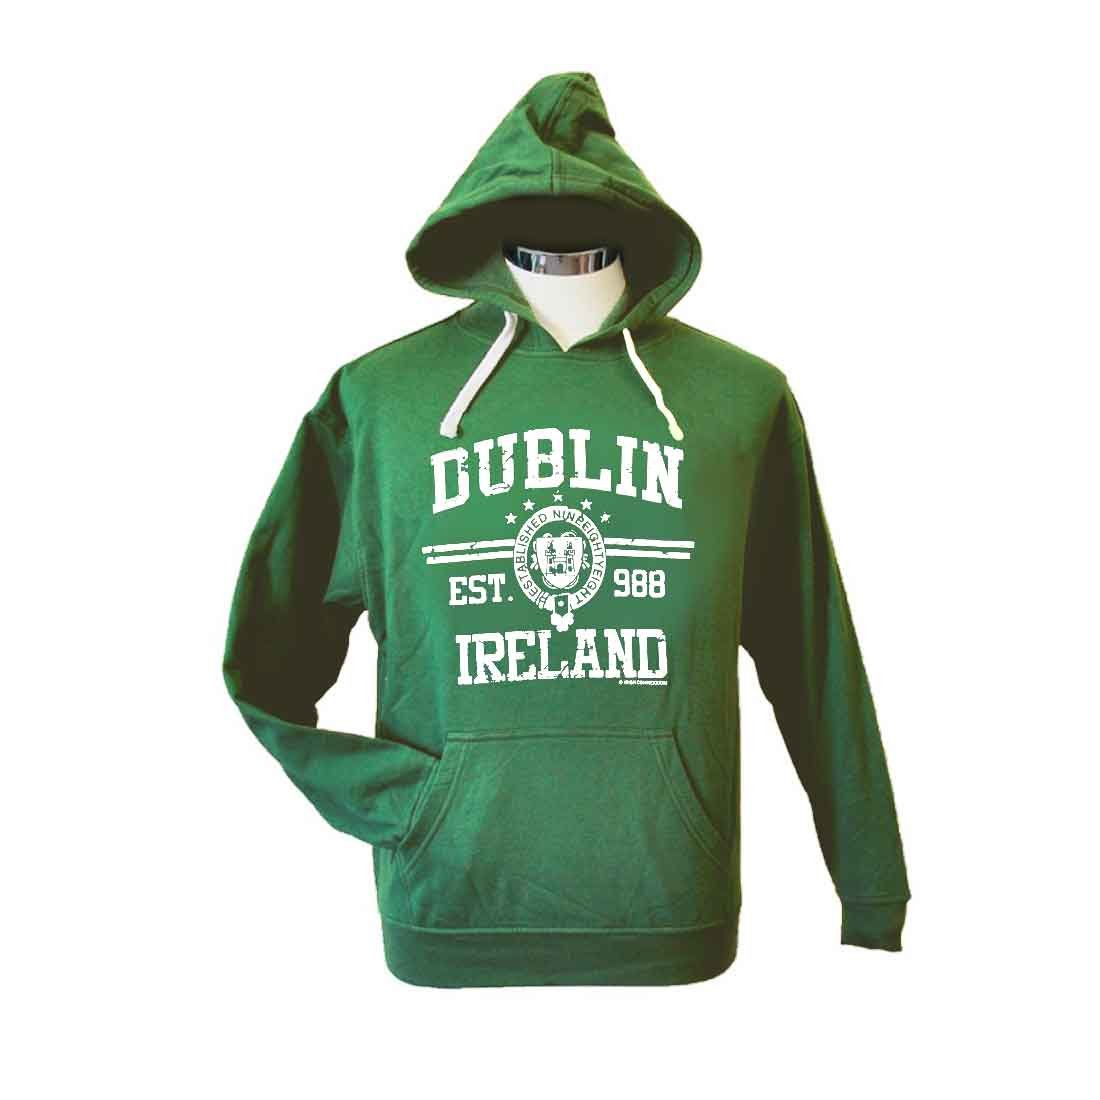 Carrolls Irish Gifts Pullover Hoodie With Dublin Ireland EST 988 Print, Green Colour